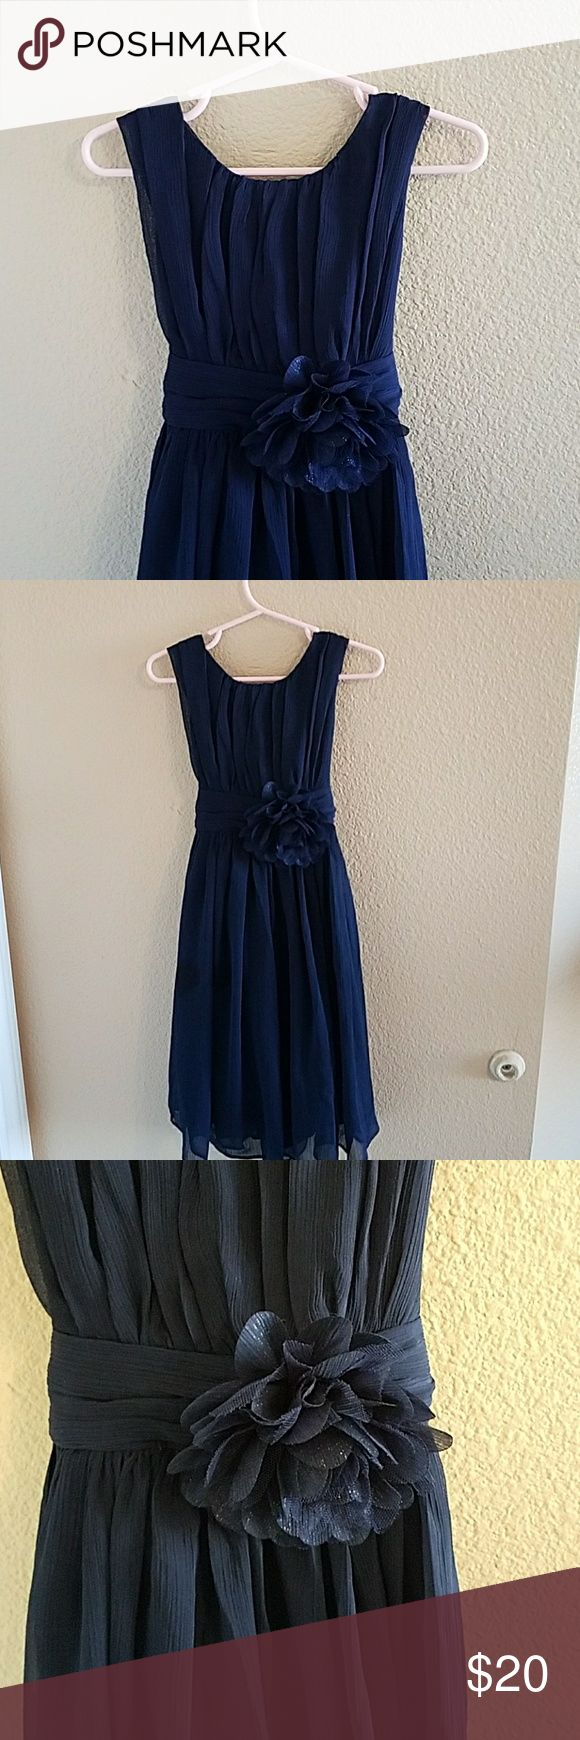 Bow Dreams Navy Blue Dress Size 4 Beautiful! Navy Blue Chiffon Dress with beautiful details. Big Slightly Glittery Flower at waist. Ties in back and Zips. Very Flowy,  my daughter loved spinning in it! Excellent Condition Bow Dreams Dresses